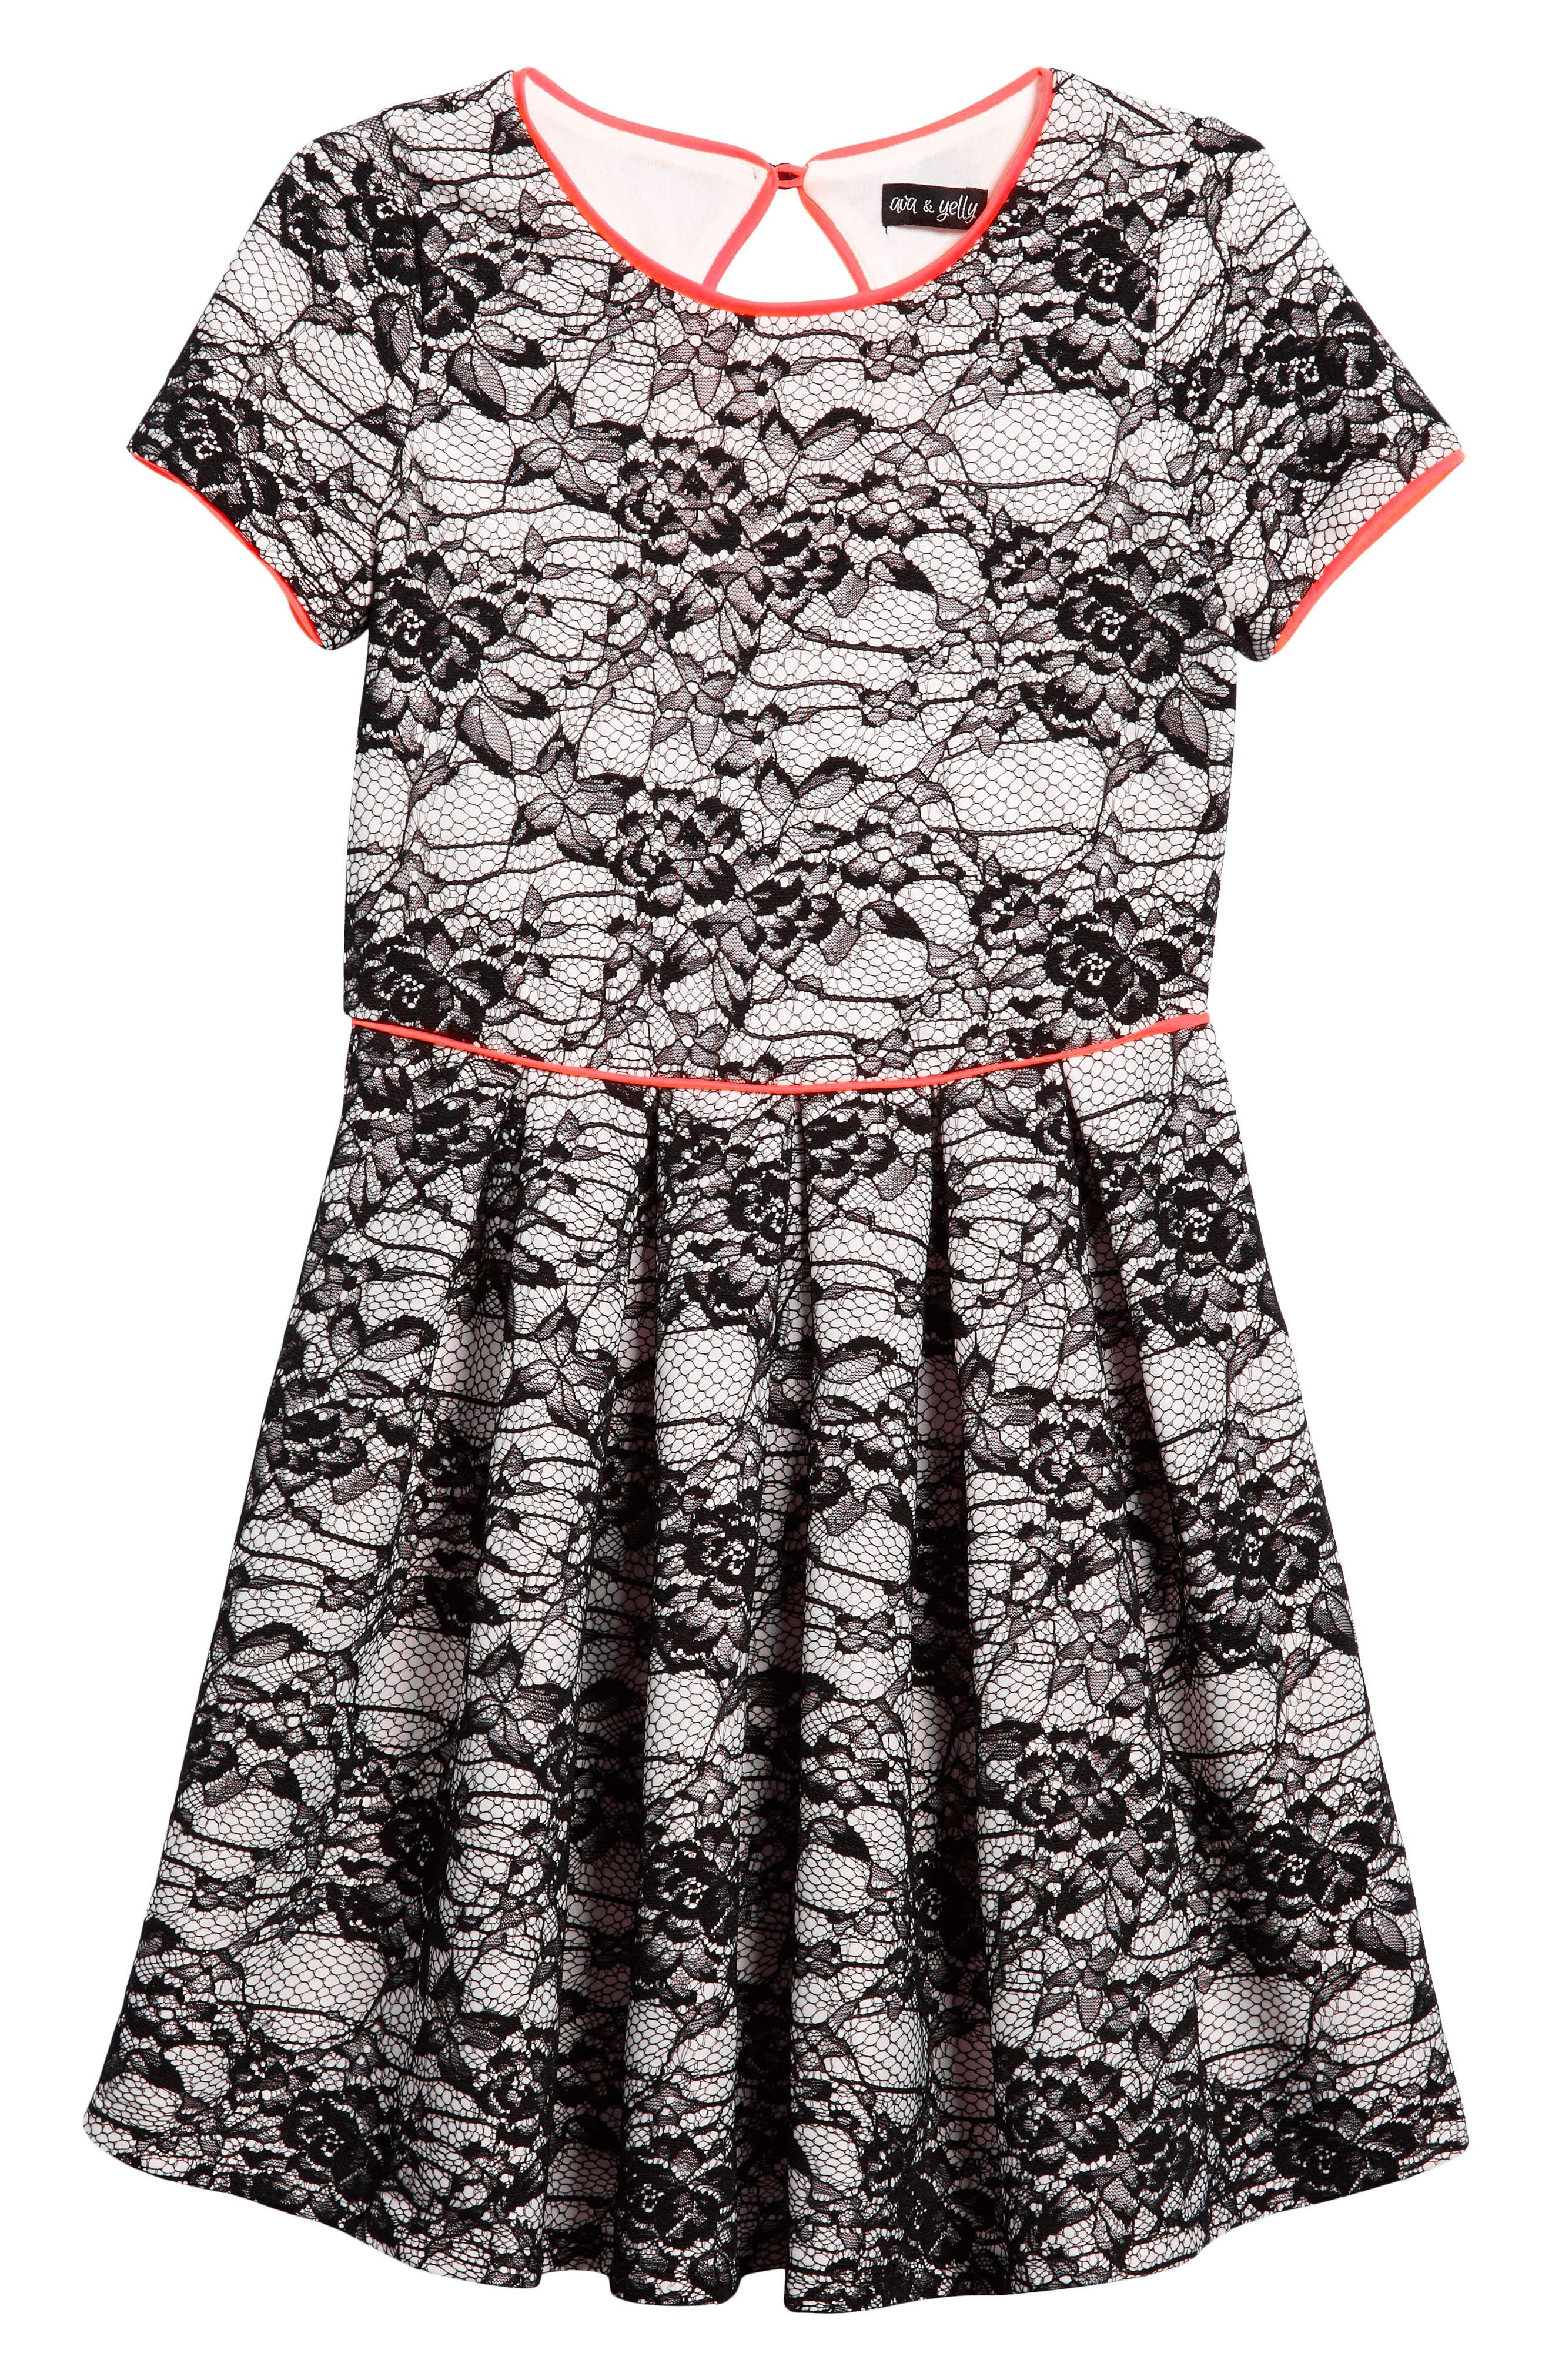 Lace Overlay Skater Dress,                             Main thumbnail 1, color,                             001